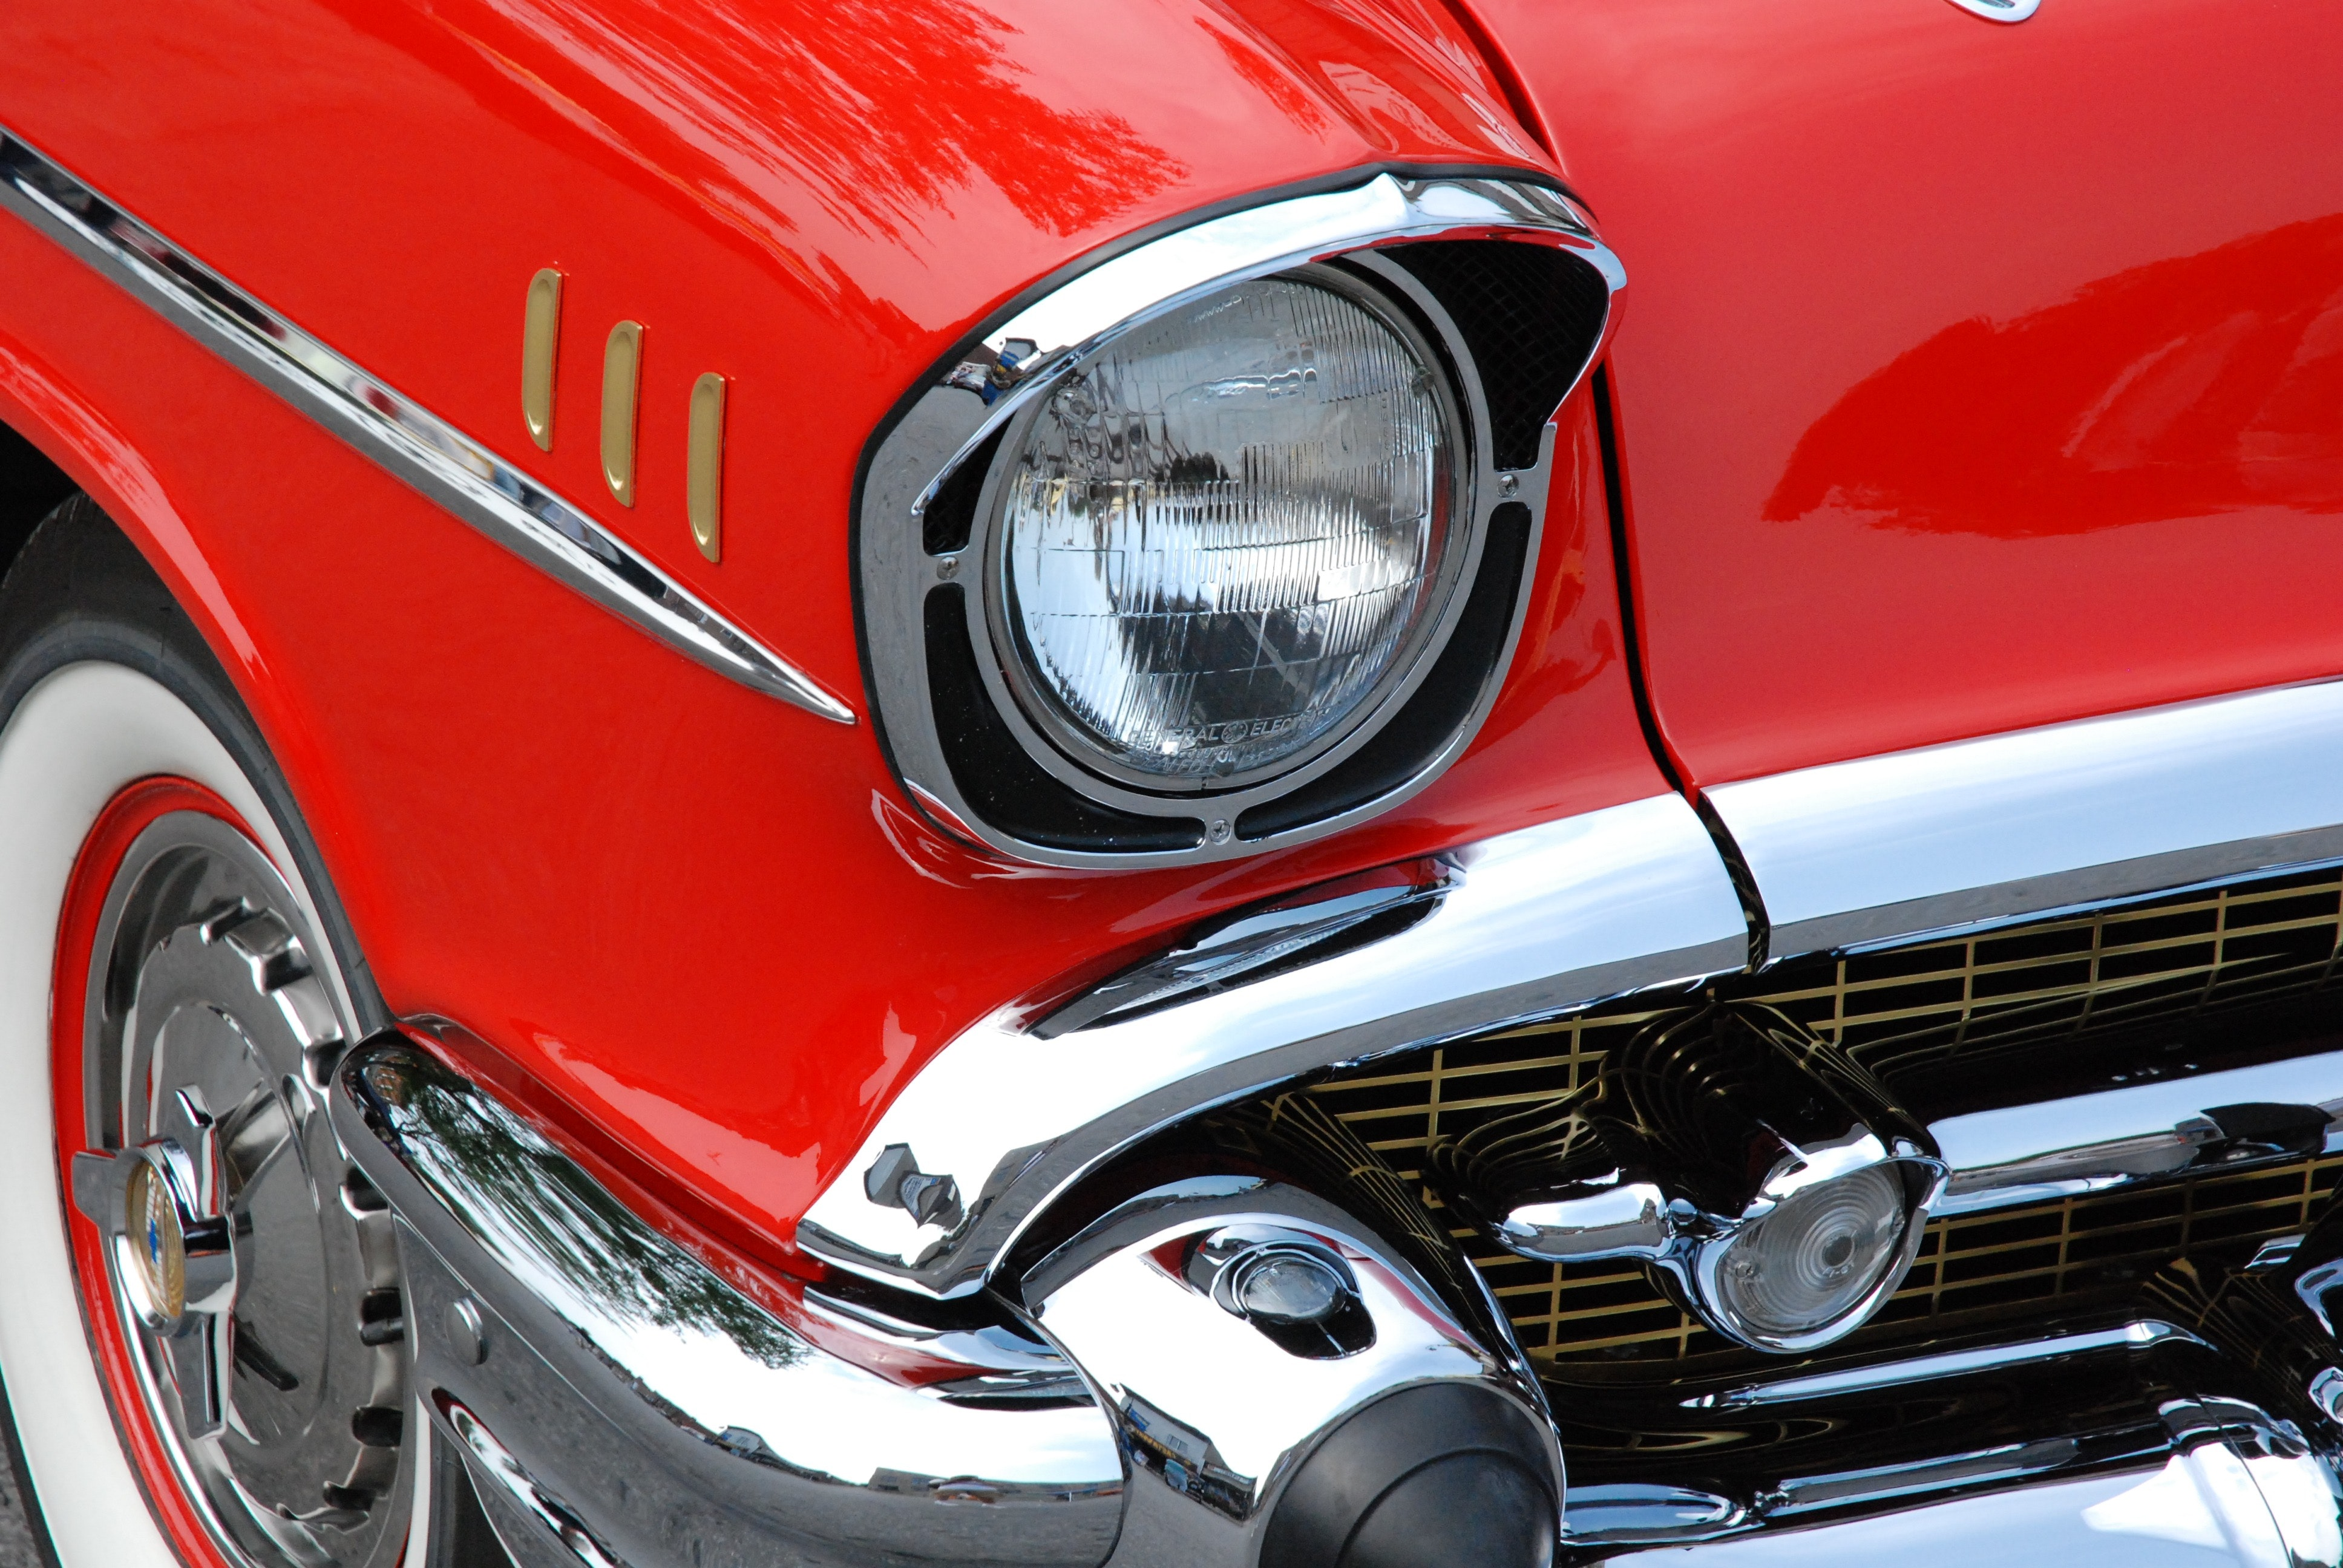 Red and Gray Classic Car, Automobile, Automotive, Car, Chevrolet, HQ Photo